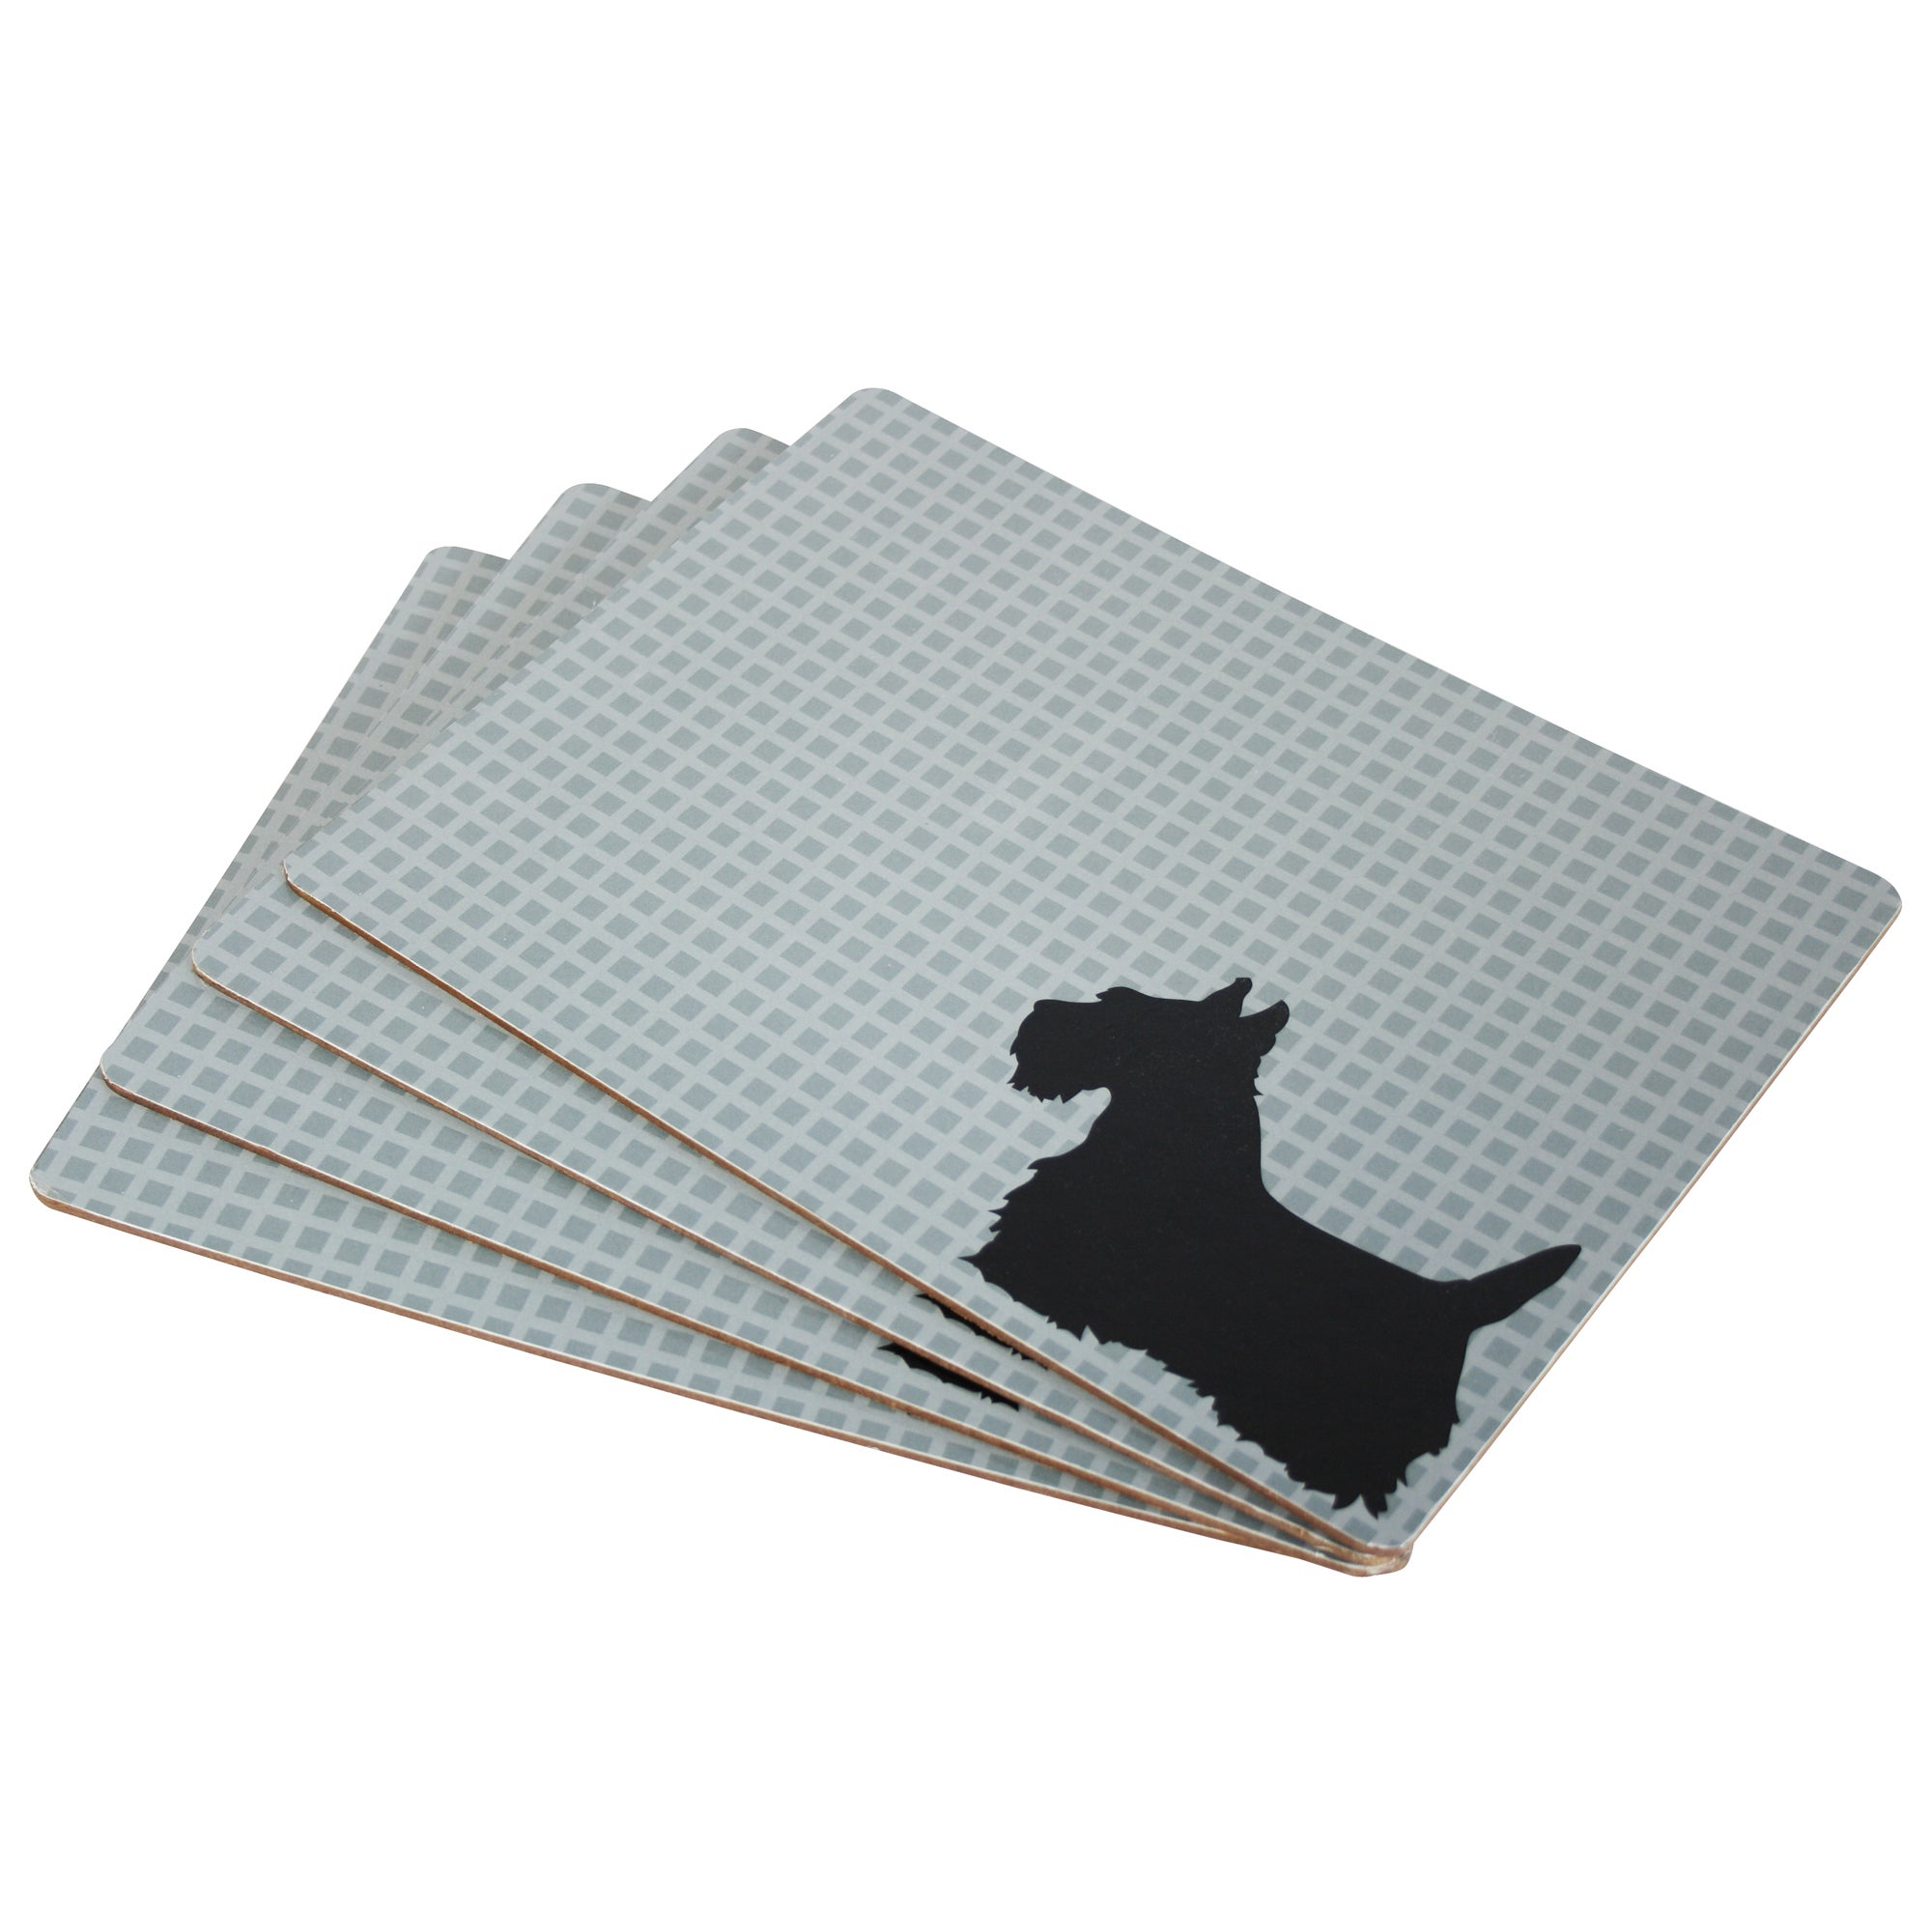 Scottish Collection Scottie Dog Set of 4 Placemats